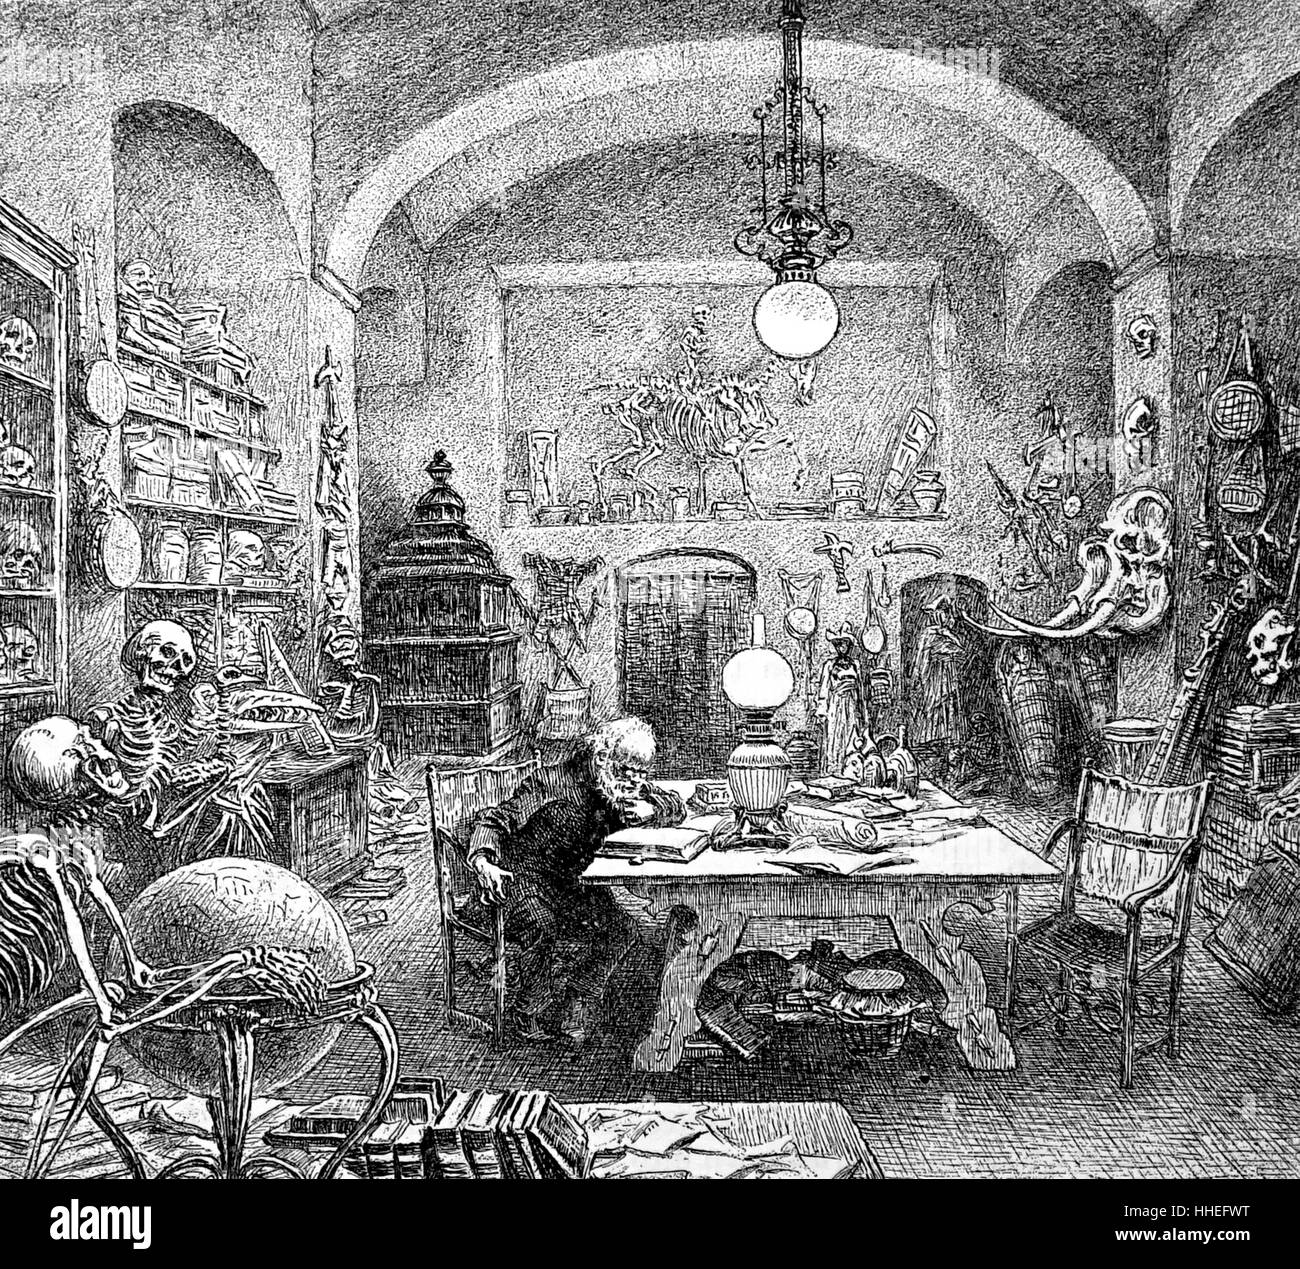 Study of the eccentric scholar. Dated 19th Century - Stock Image